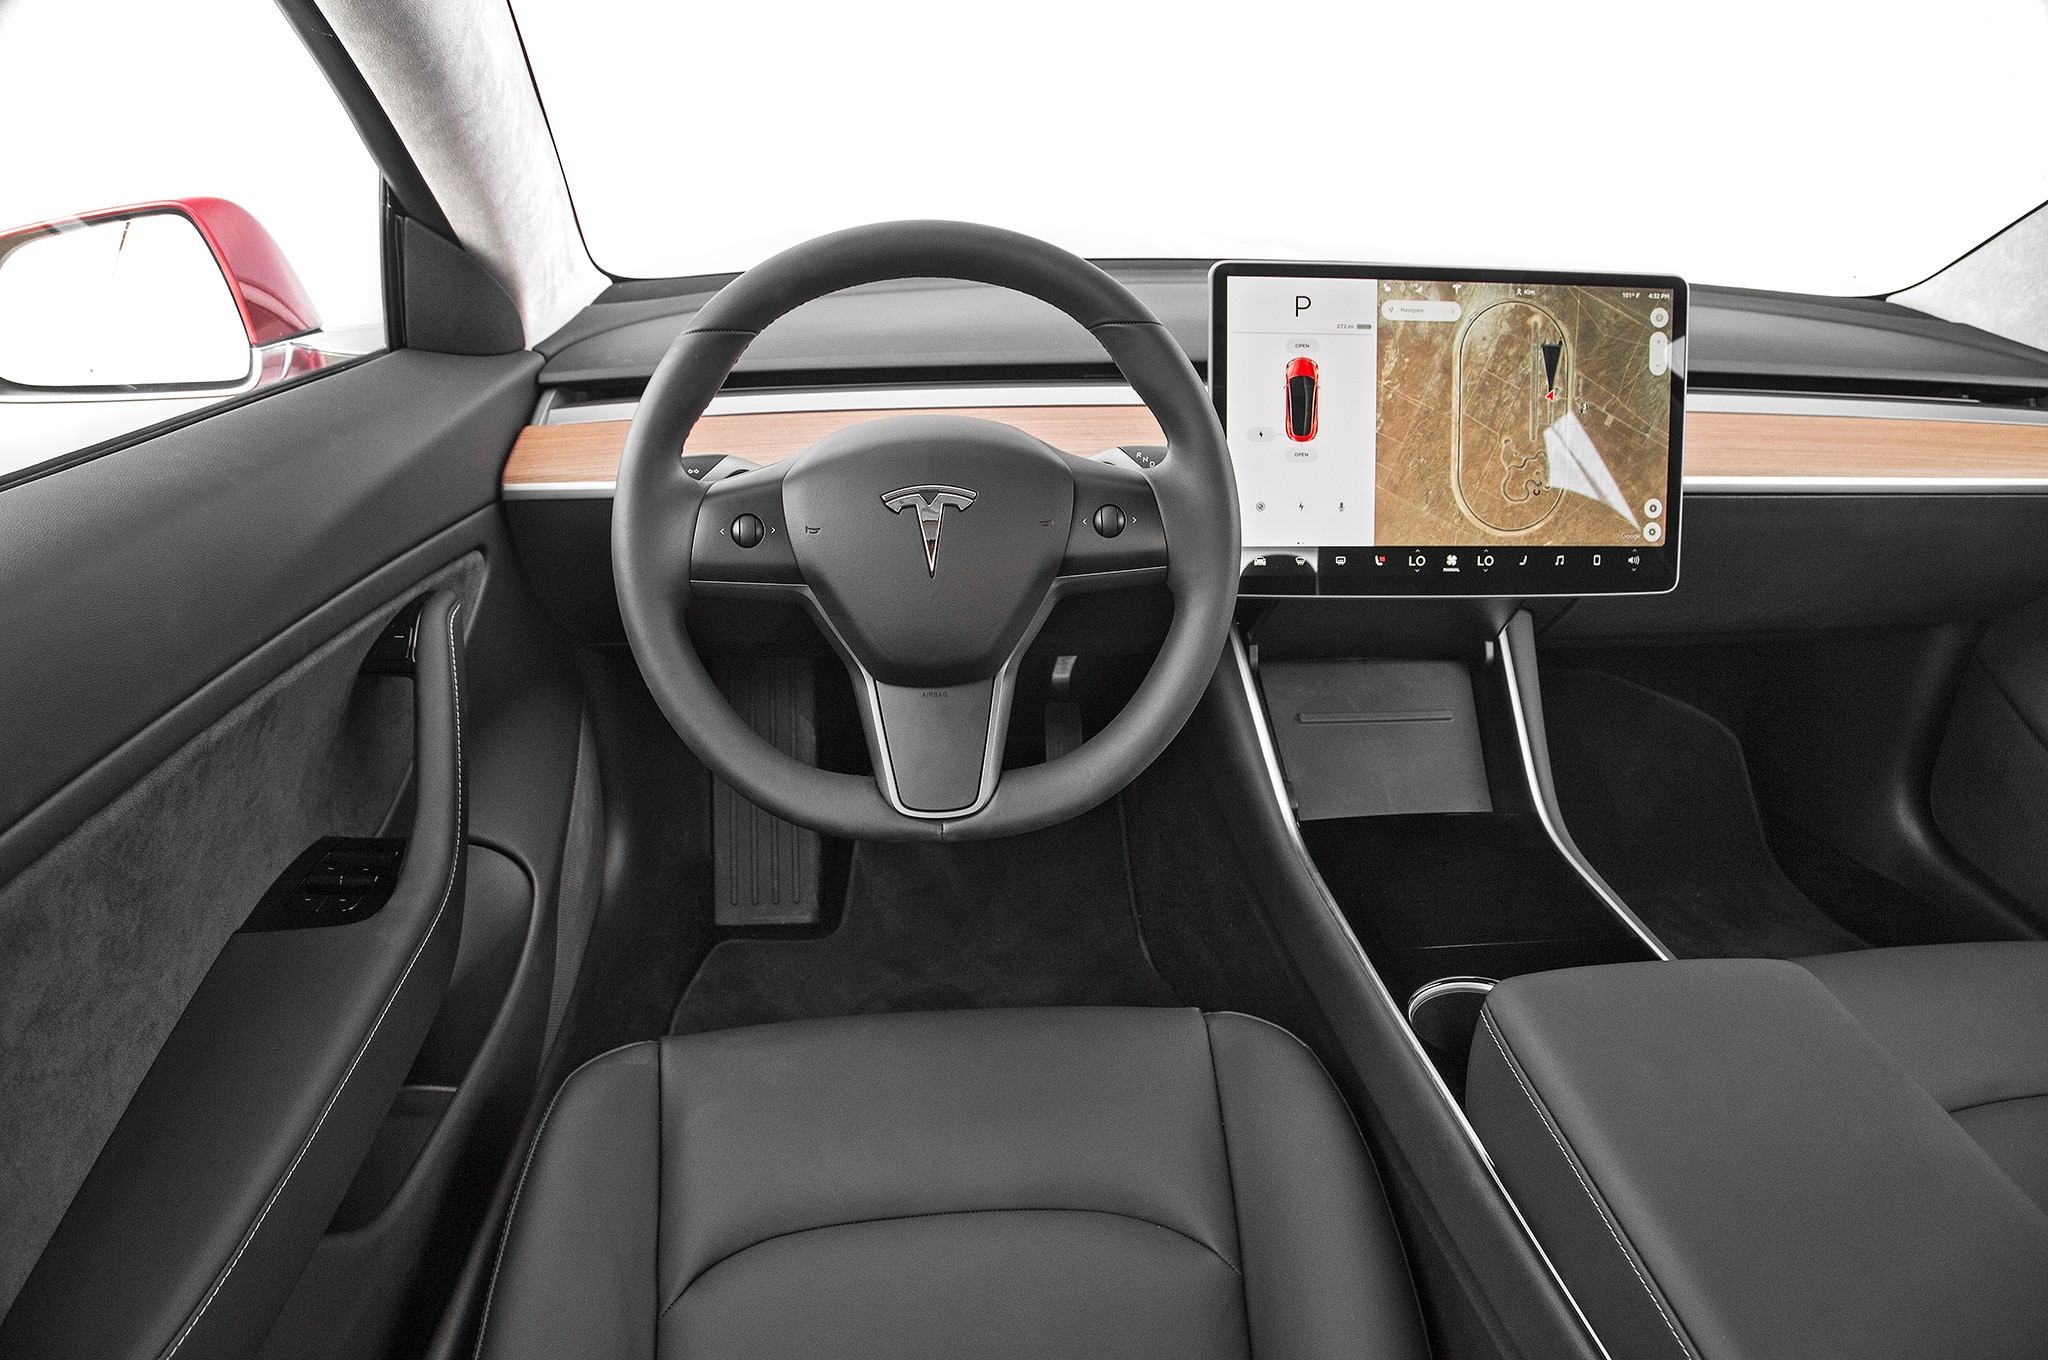 2017 Tesla Model 3 Dashboard 22 Noviembre Miguel Cortina